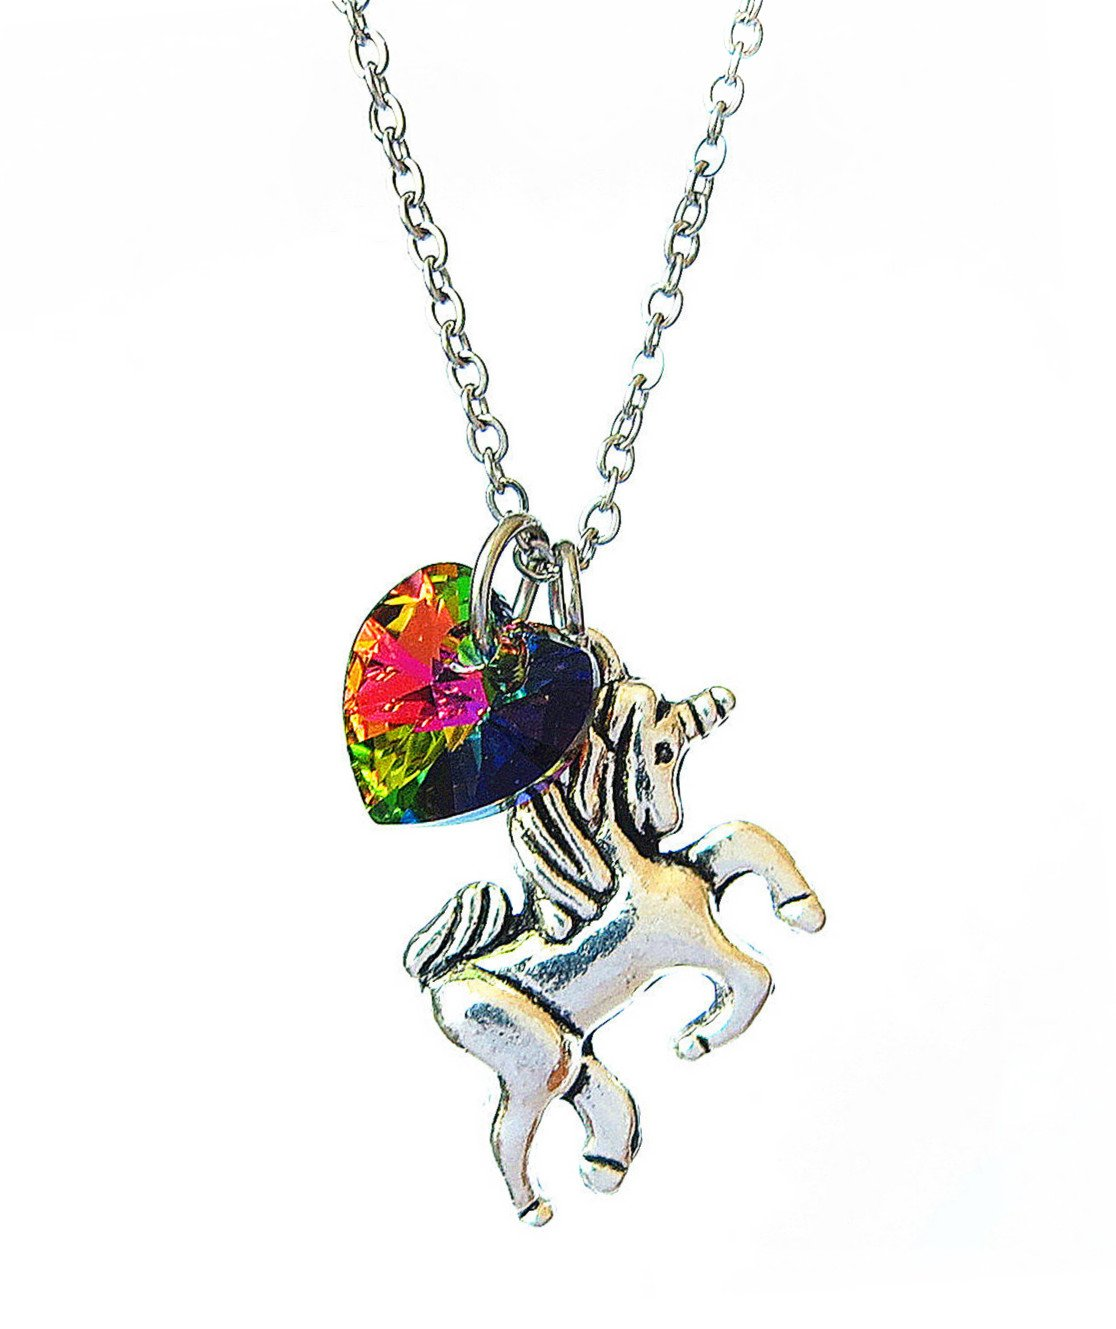 Girl Gift Unicorn Necklace with Rainbow Color Heart Crystal,Rainbow Unicorn Necklace,Fairy Tale Necklace, Fantasy Necklace, Animal Necklace 5